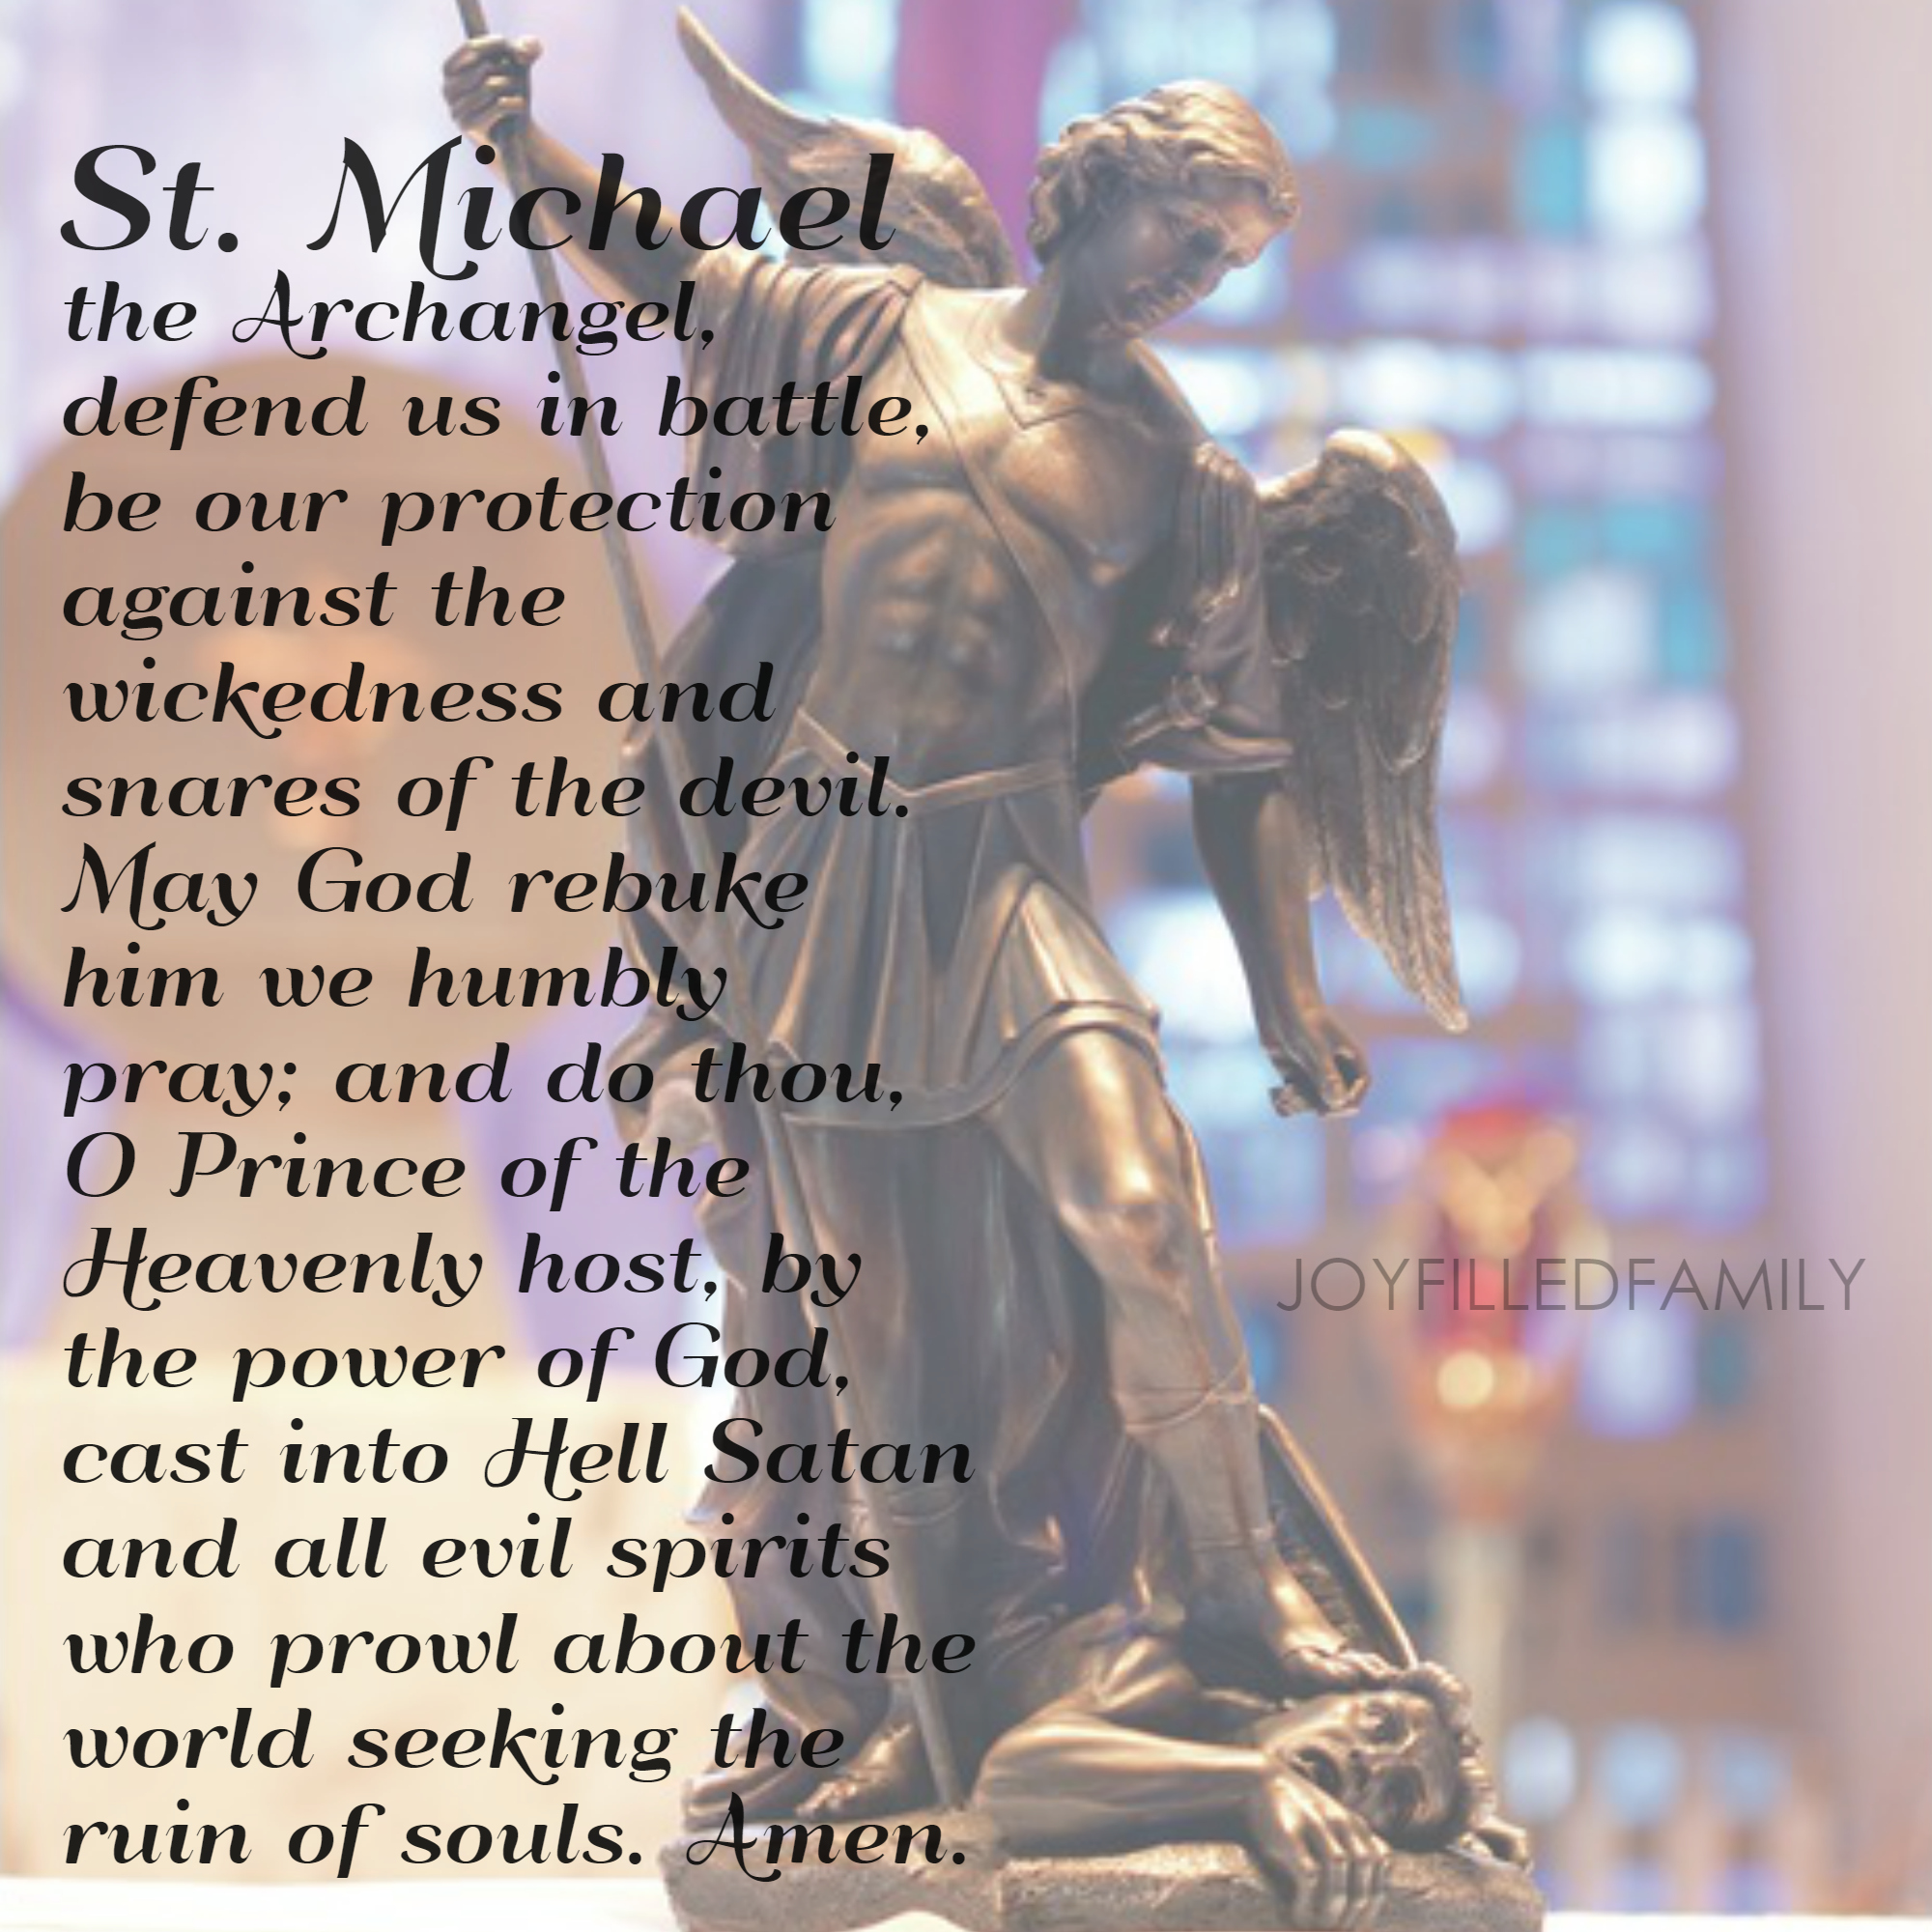 photo about St. Michael the Archangel Prayer Printable named The Perseverance of St. Michael the Archangel